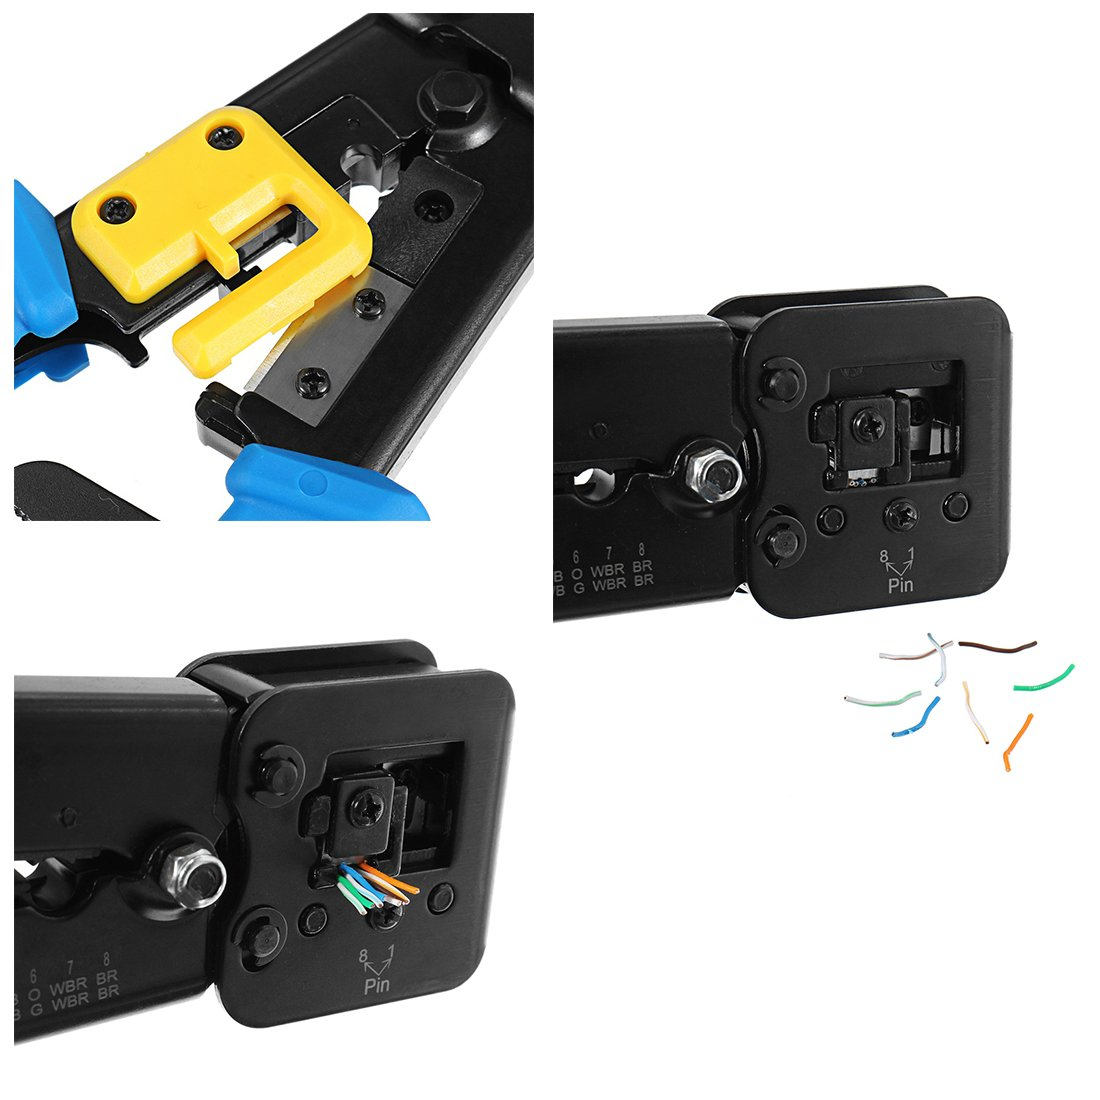 RJ45 Crimp Tool 6P 8P Multi-function Cable Cutter Pass Through Crimper Ethernet Cable Connector Crimping Tool Ratcheting Hand Tools Bonus CAT6 Connector 20 Pack by Ewans (Image #5)